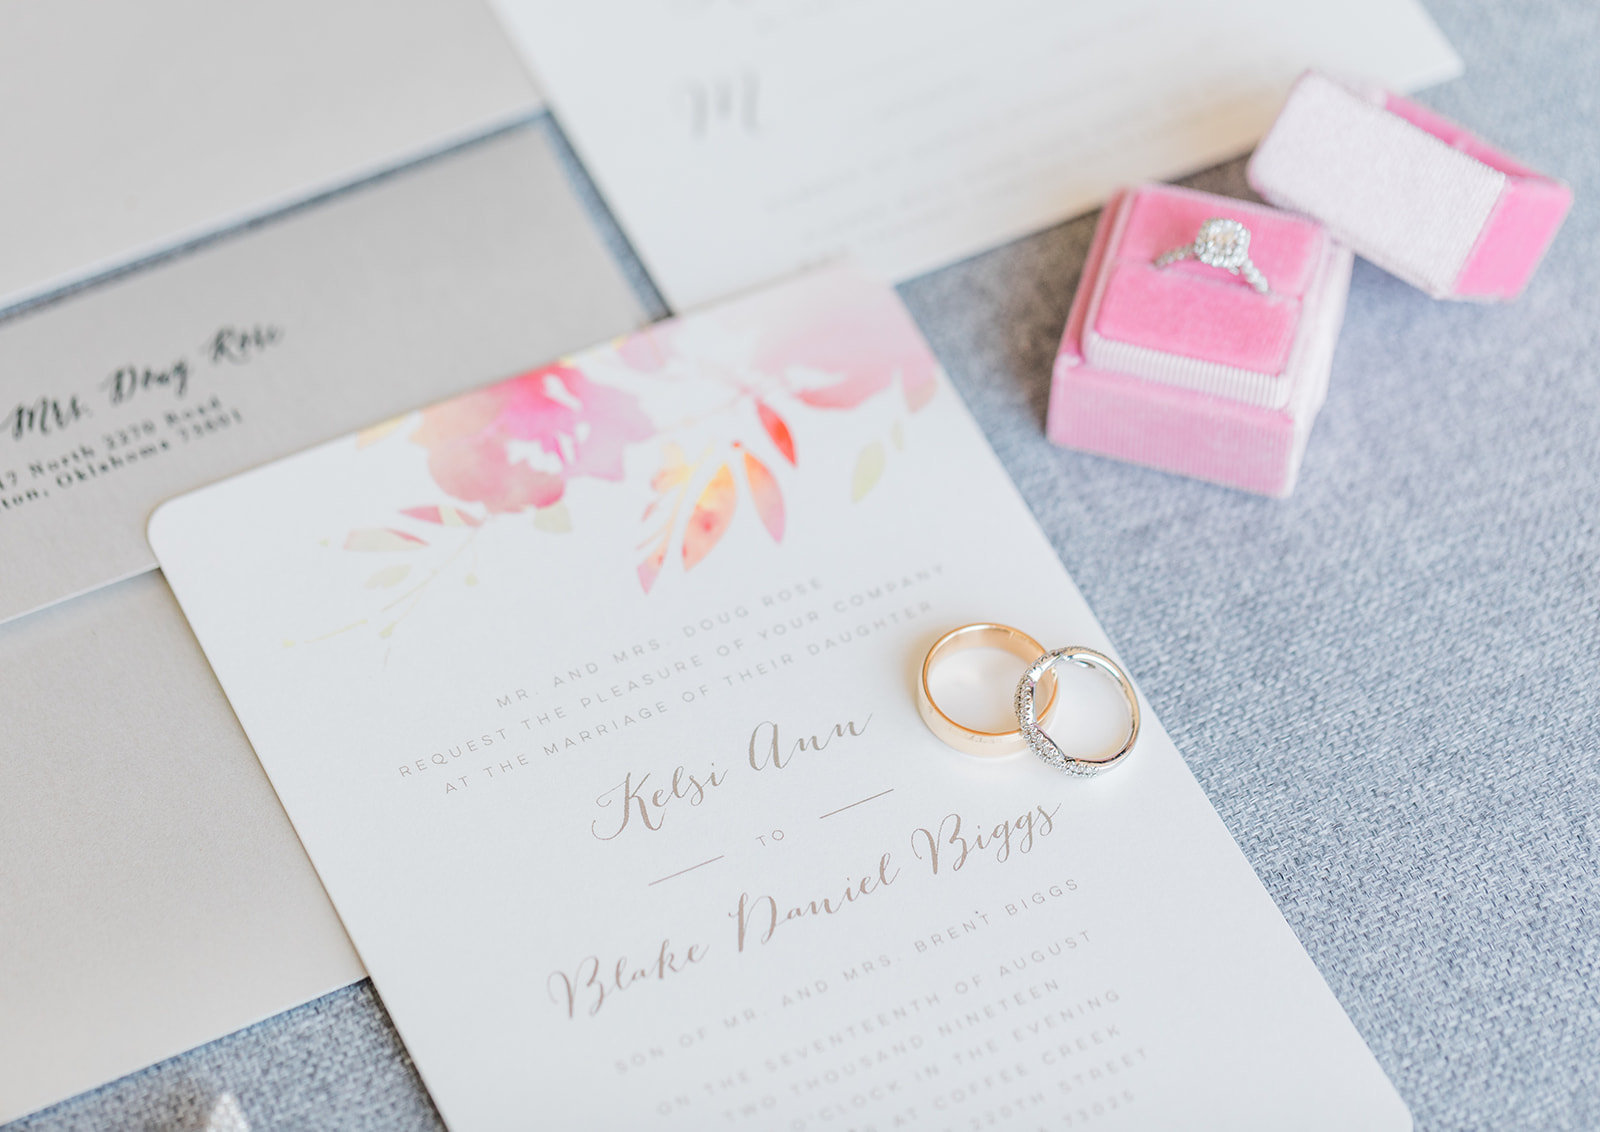 invitation suite edmond wedding